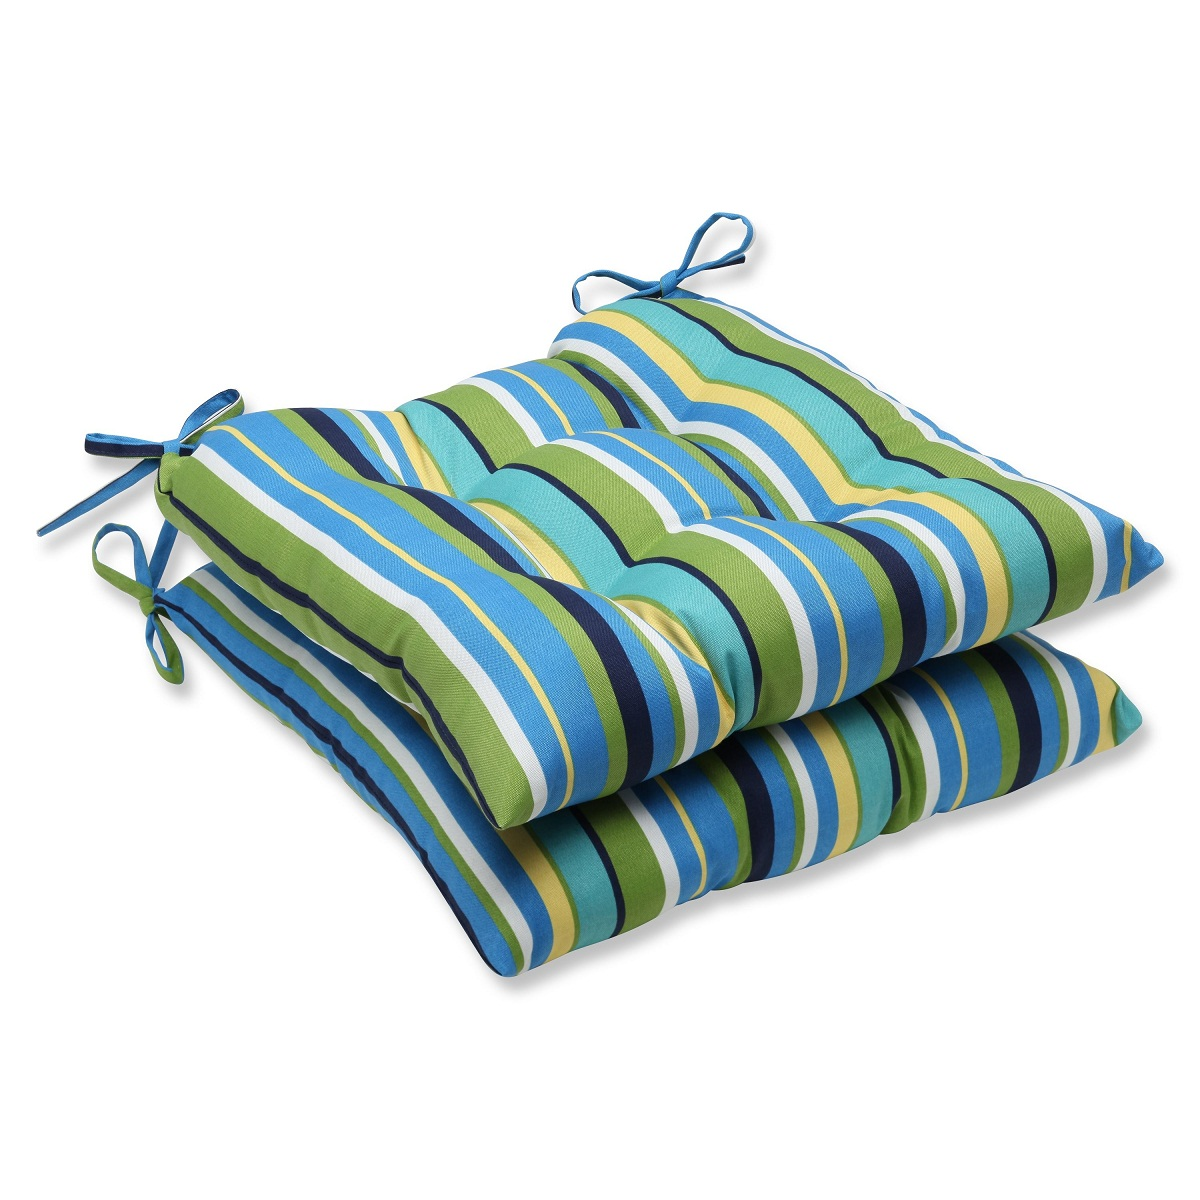 set of 2 strisce luminose blue and yellow striped outdoor patio chair cushions 19